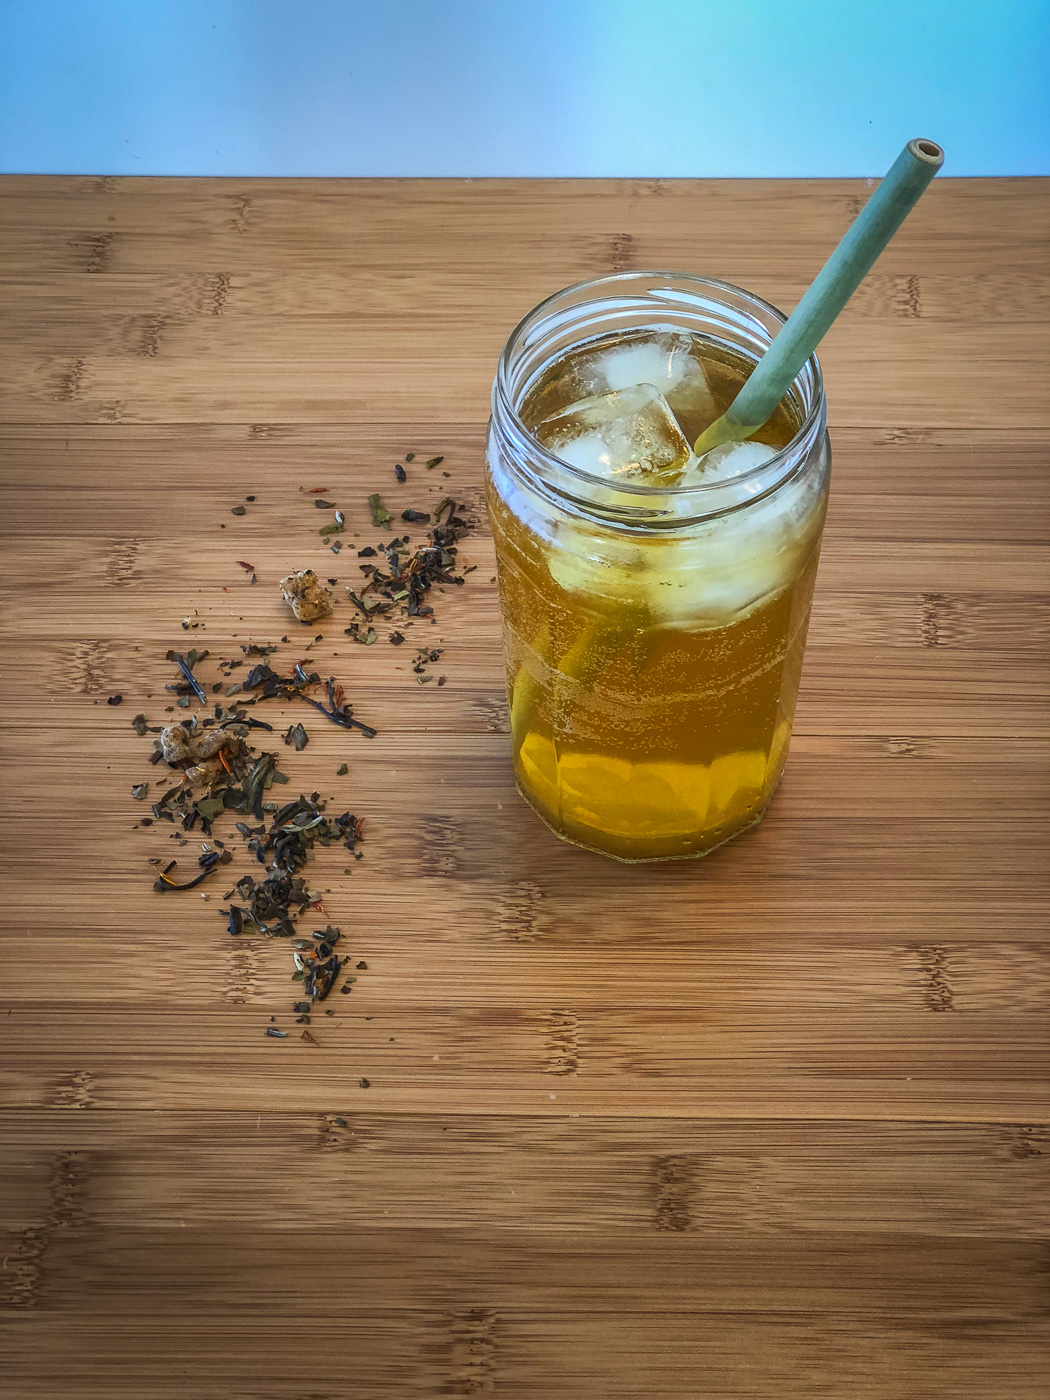 Glass of iced tea with a straw, with some loose leaf tea sprinkled next to it